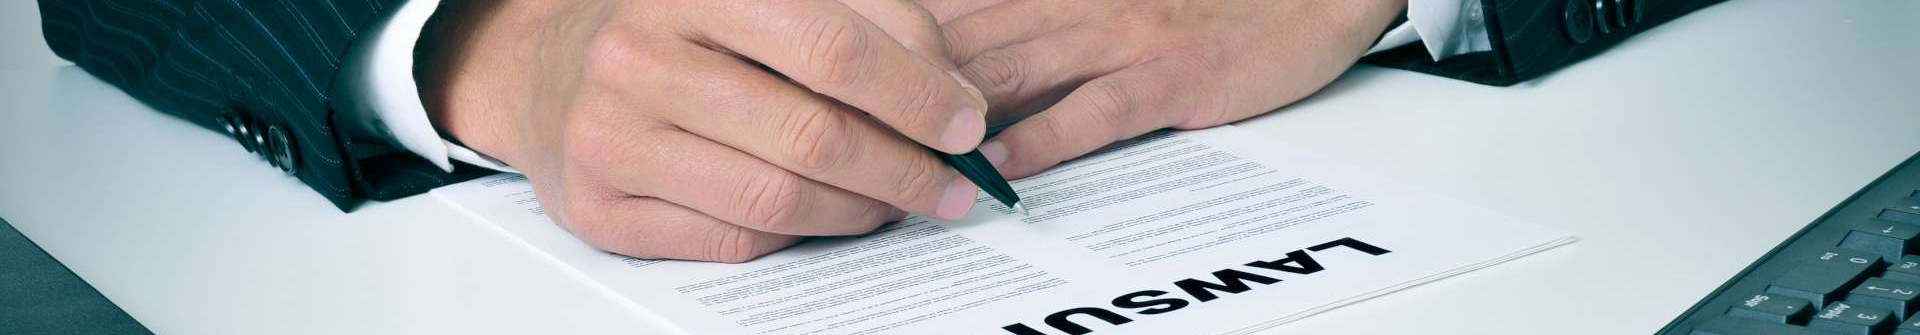 a man signing a lawsuit document.